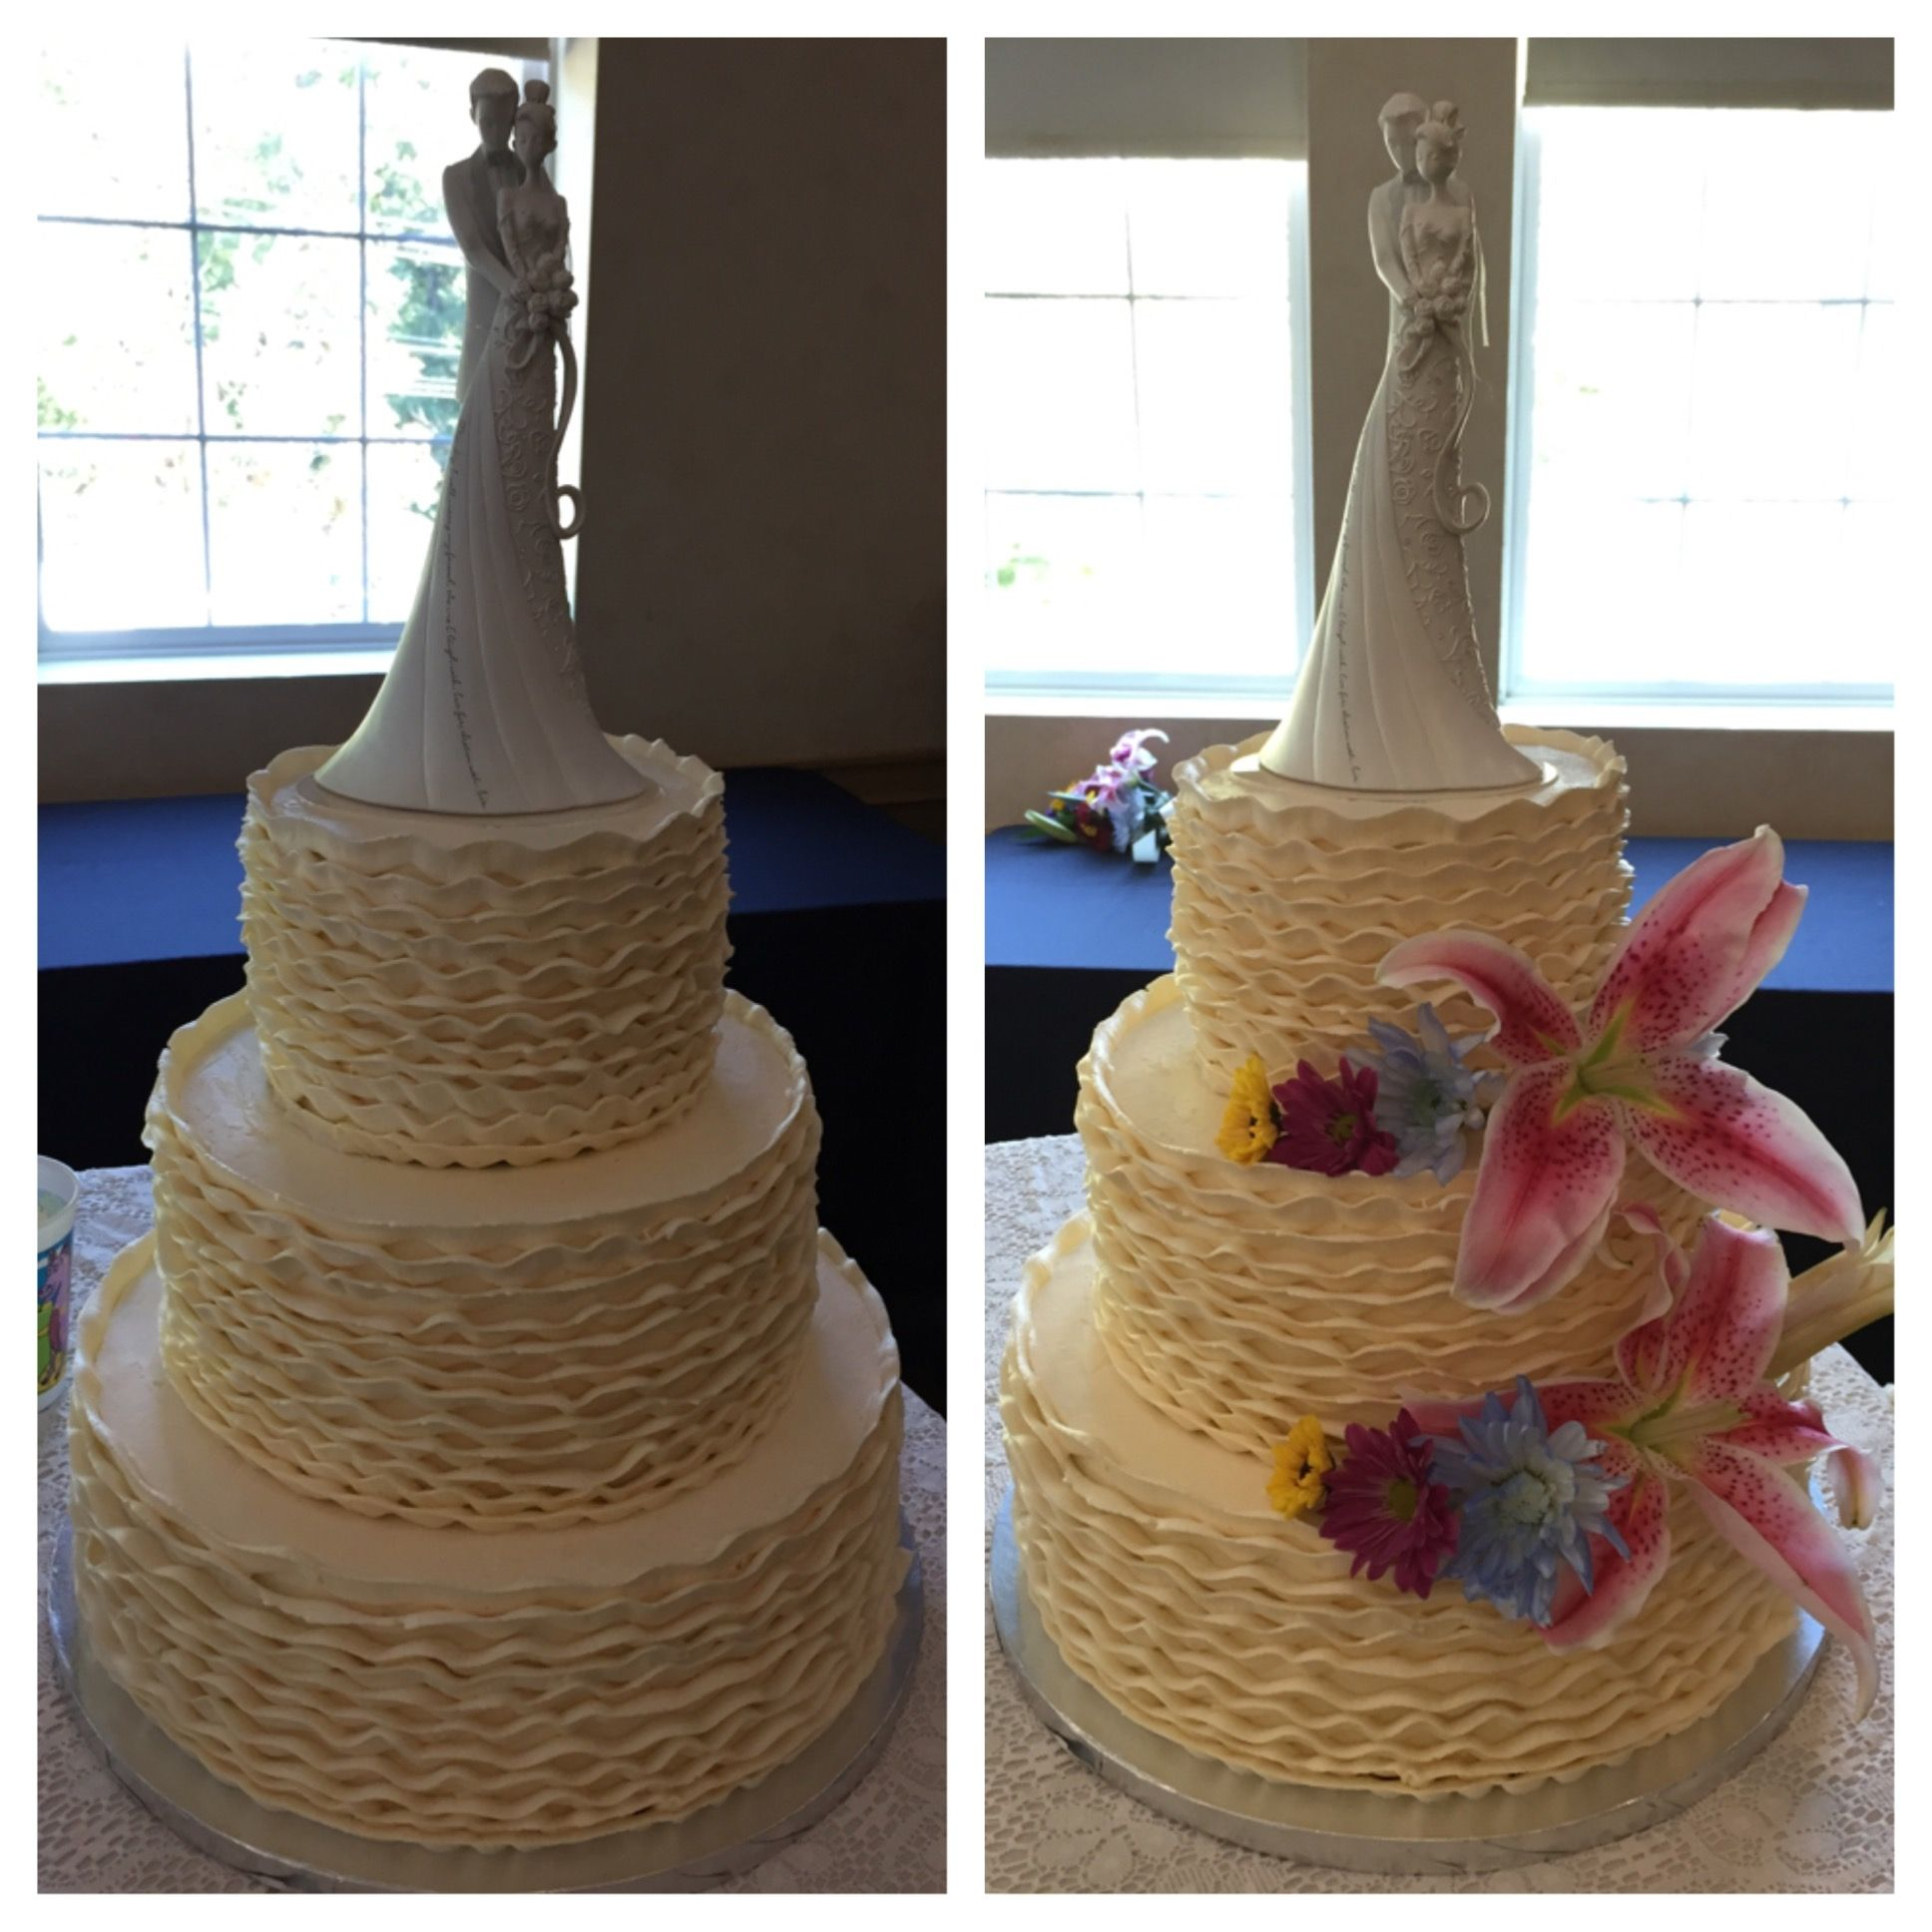 Before Amp After Flowers 9 27 14 Custom Cakes Cake Desserts